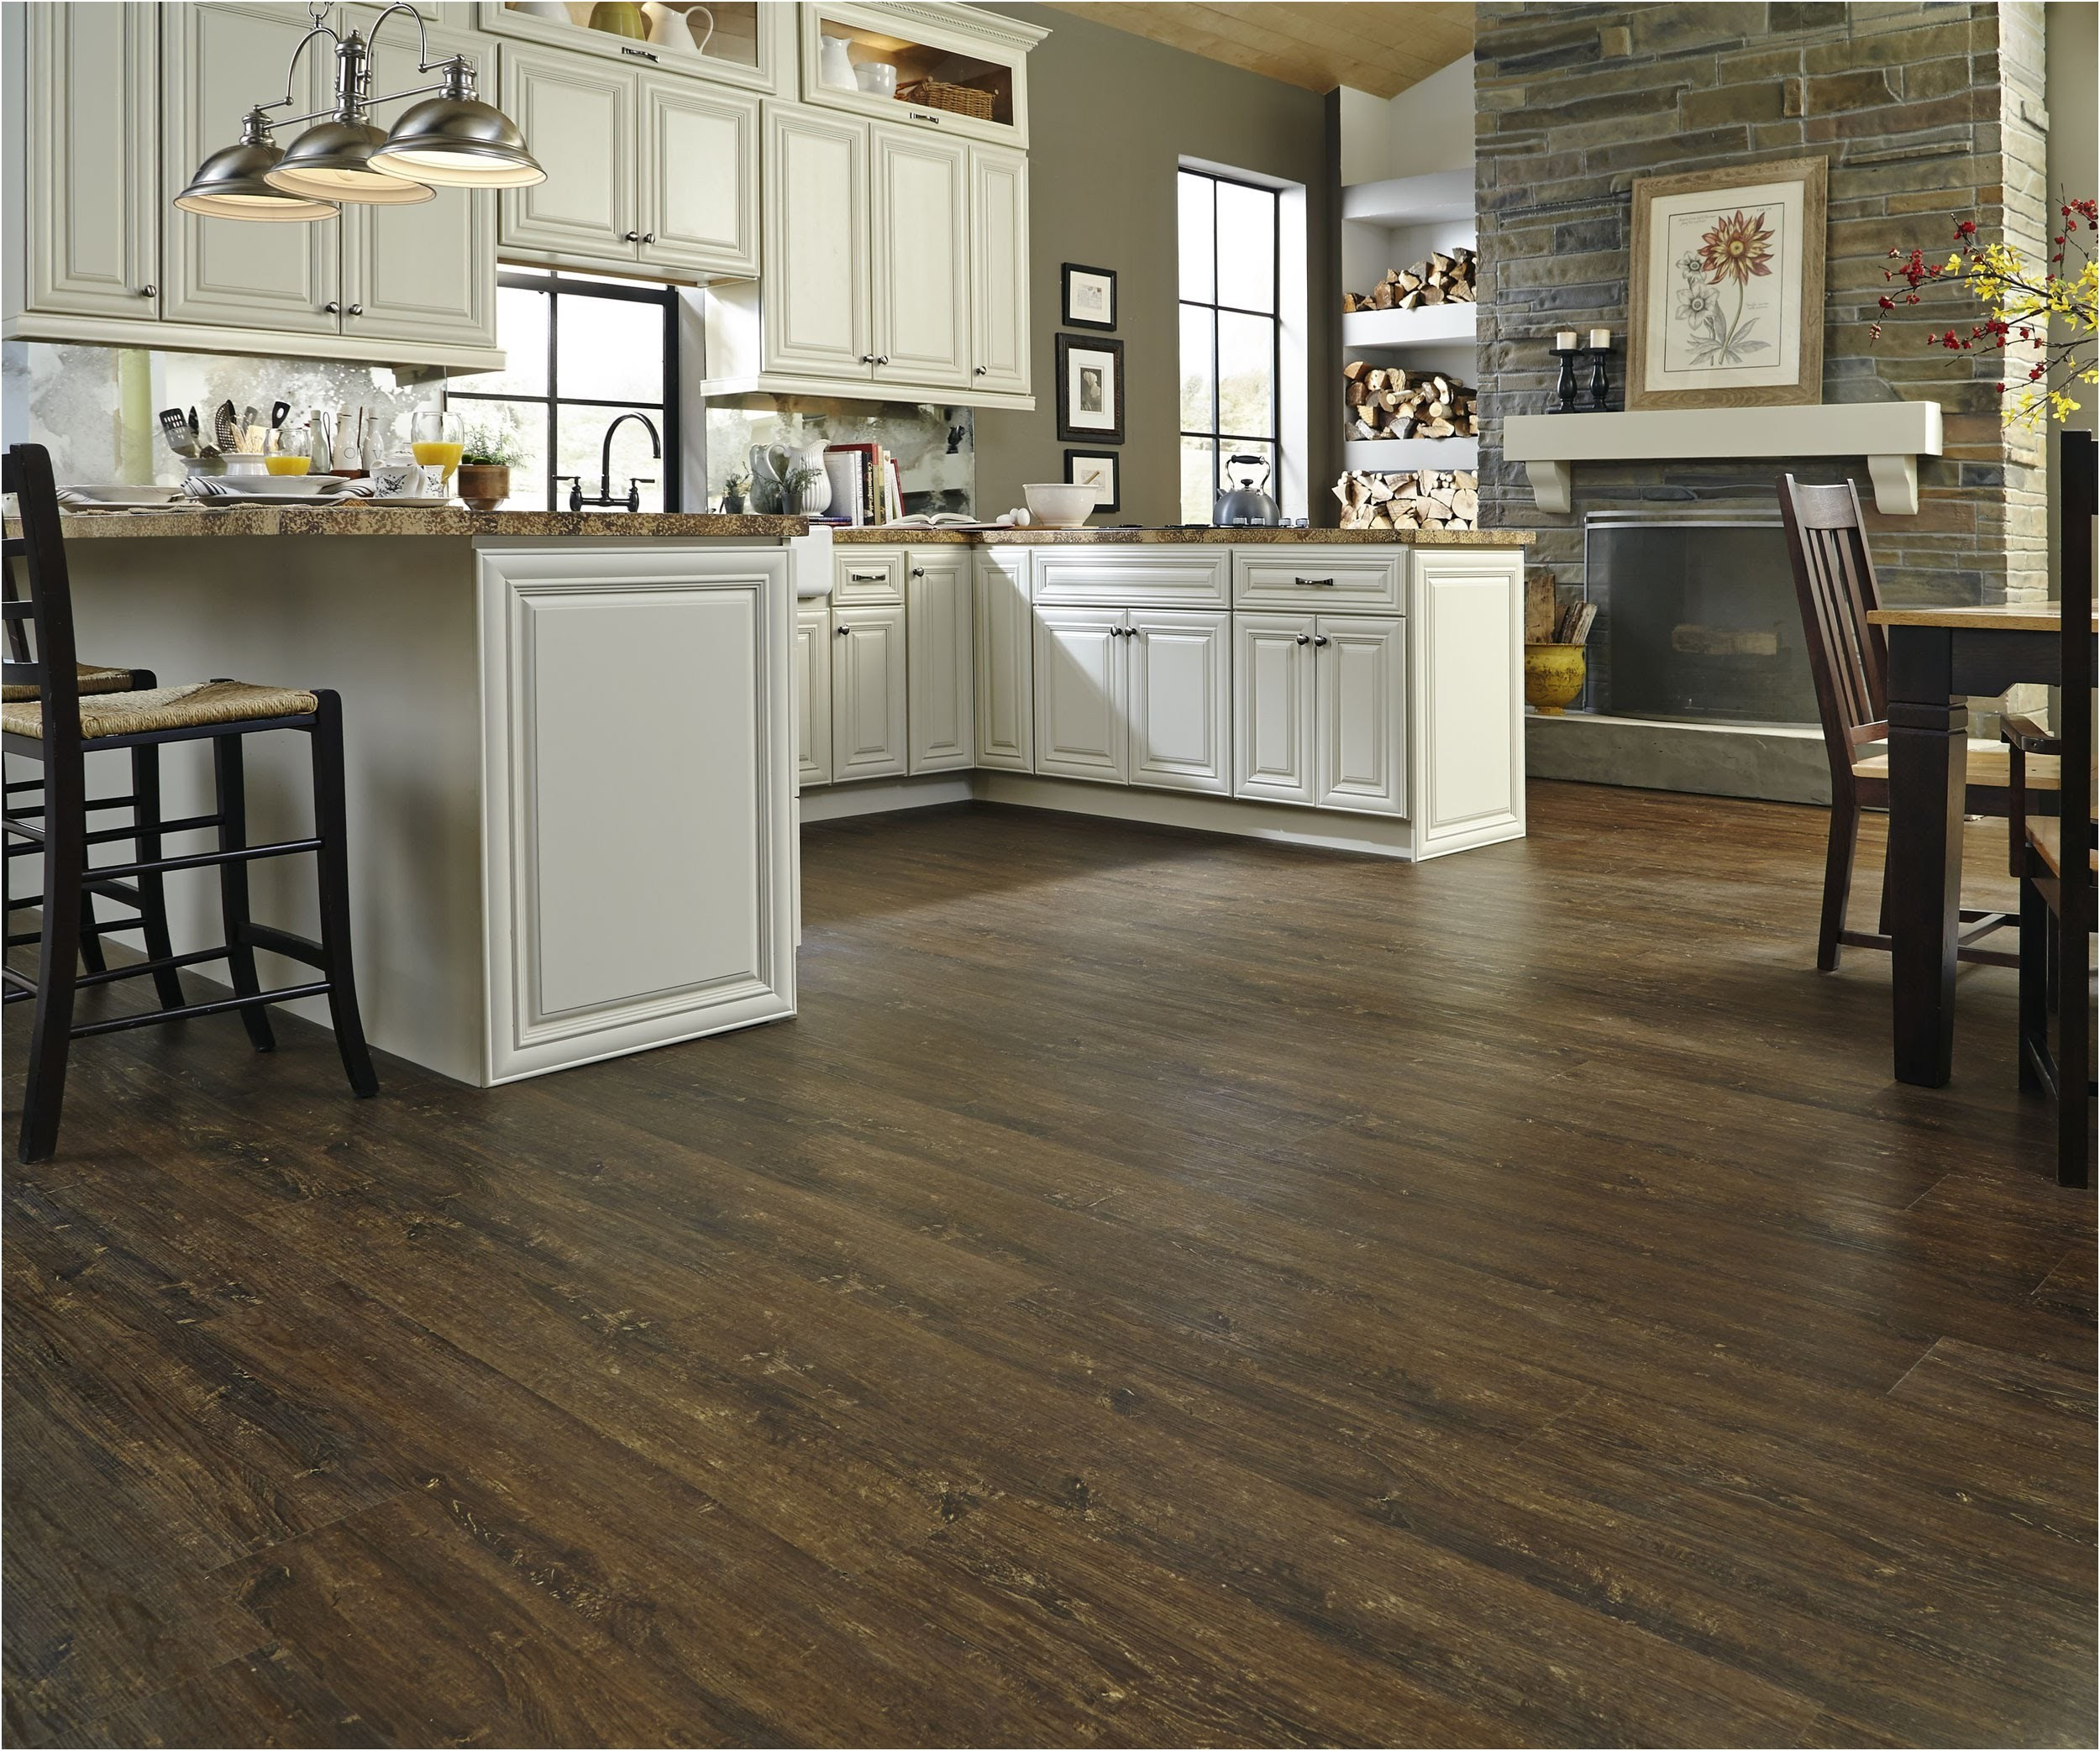 lowes hardwood flooring prices of 44 best of lowes carpet calculator rugs on carpet pertaining to lowes carpet calculator elegant 15 realistic wood stair stringers lowes of lowes carpet calculator 44 best